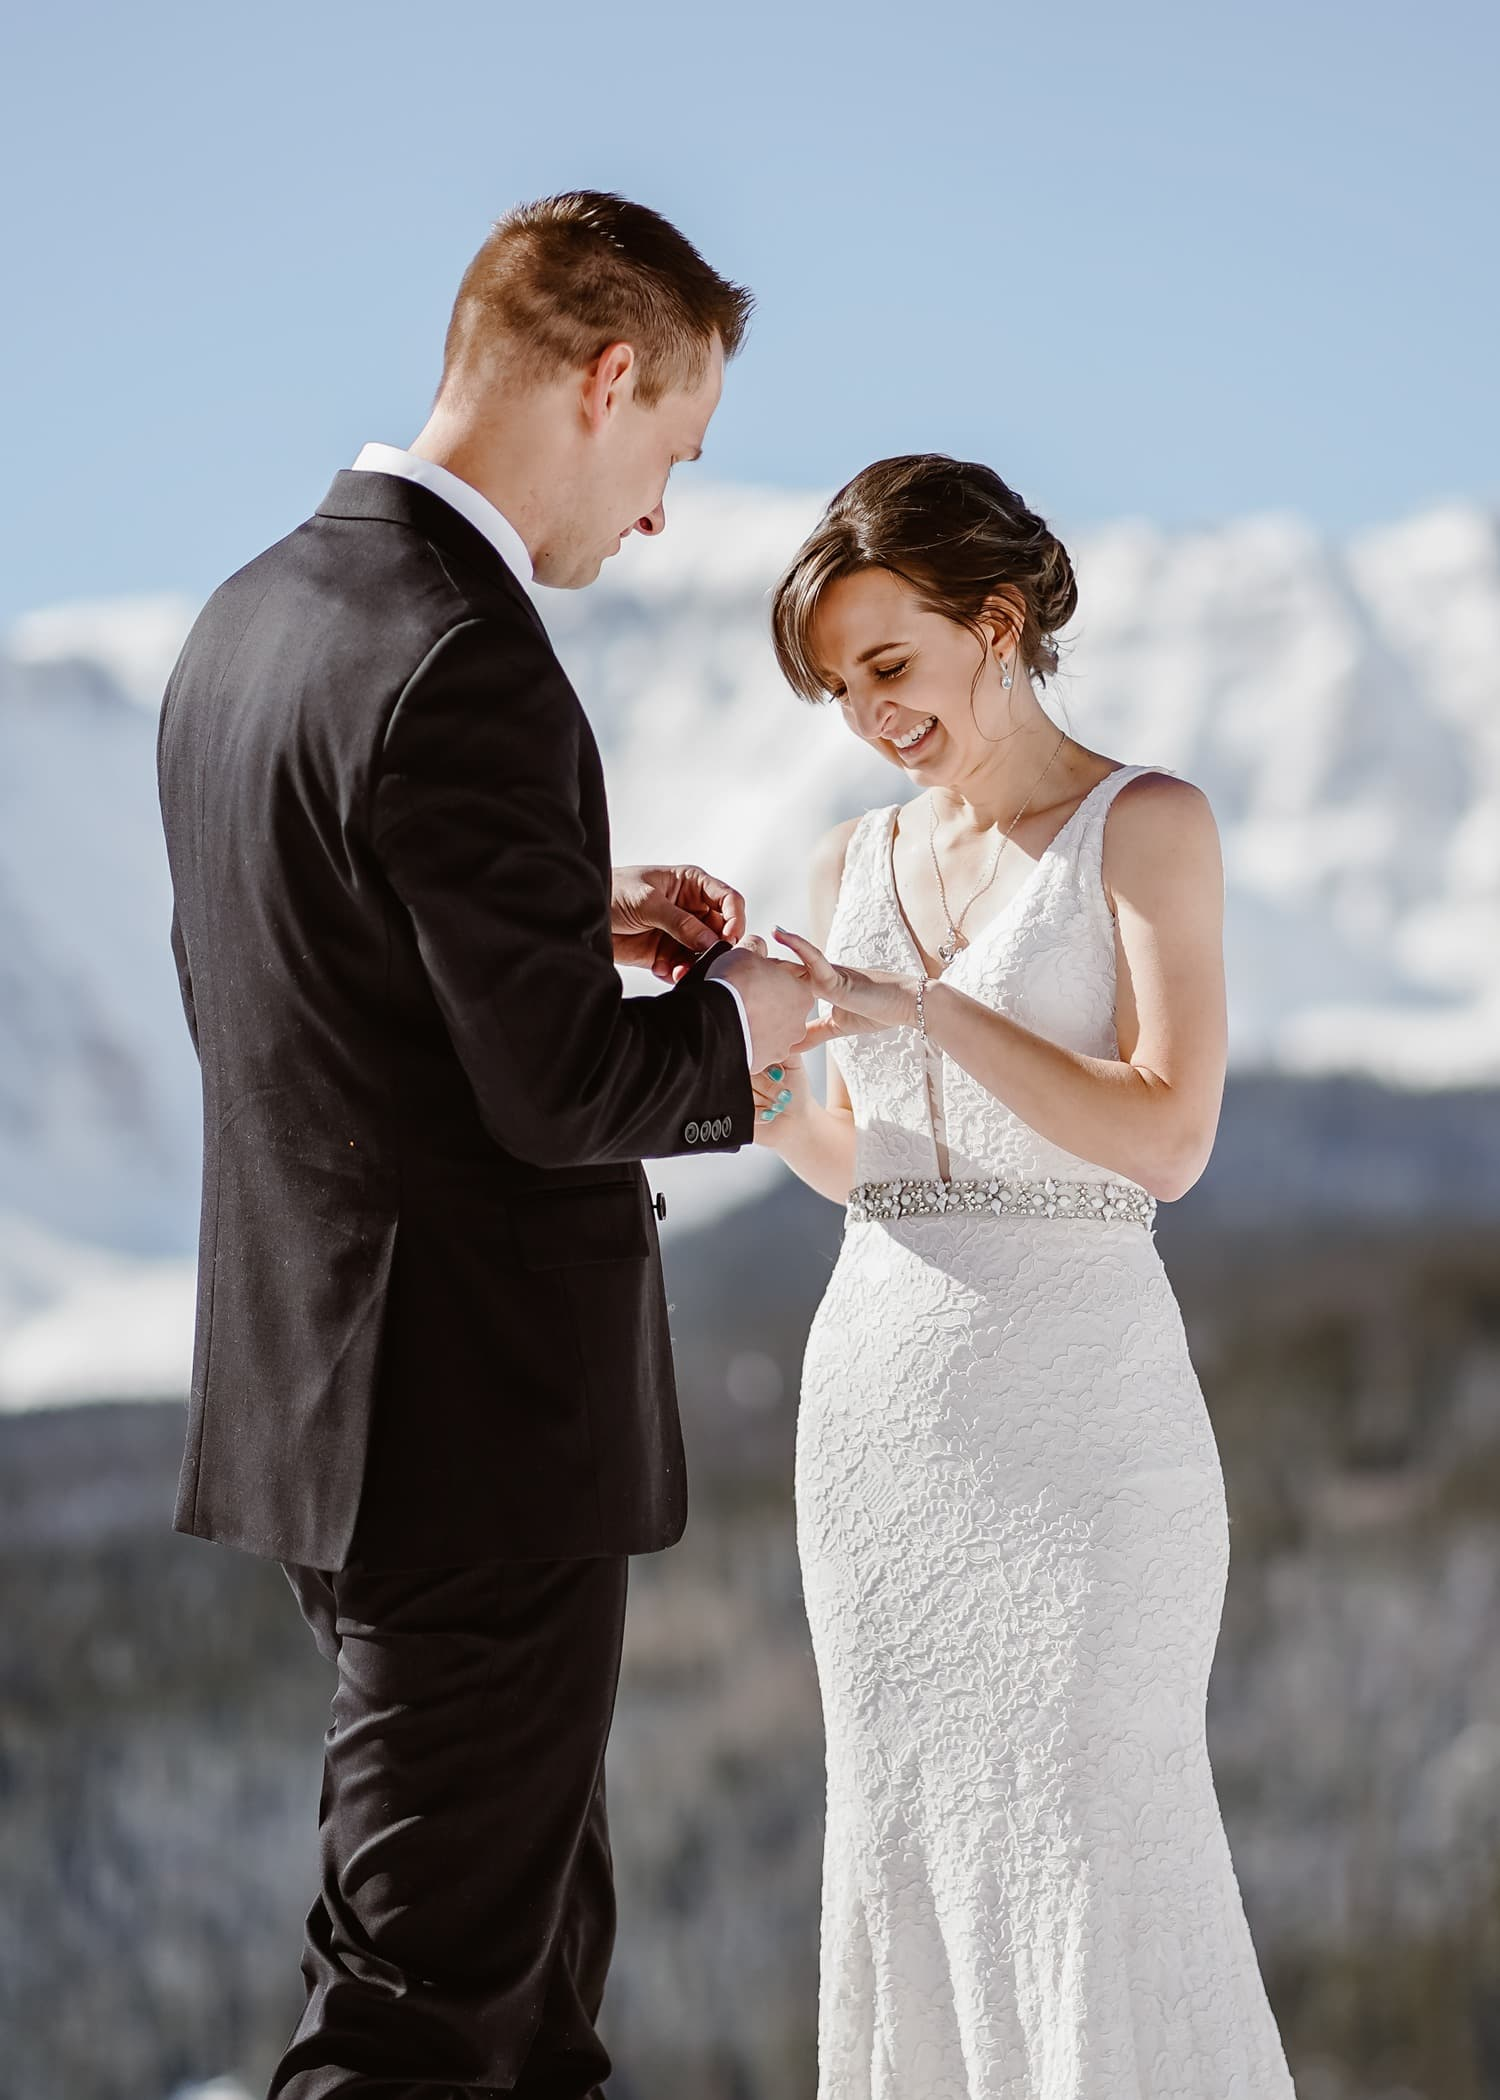 Ring Exchange at Telluride Elopement